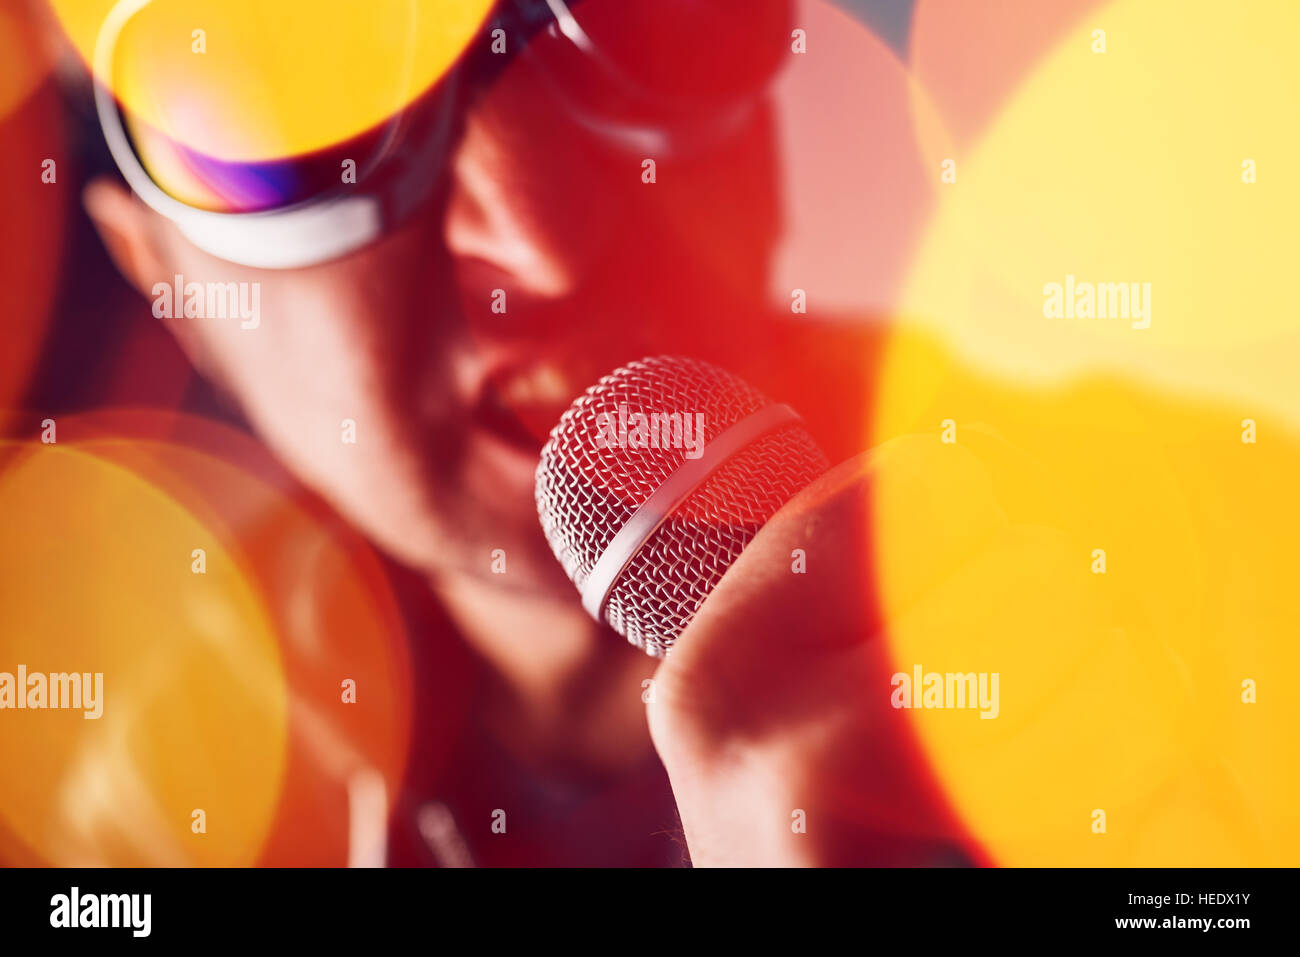 Alternative rock music singer singing song into microphone, bokeh light effect and selective focus - Stock Image